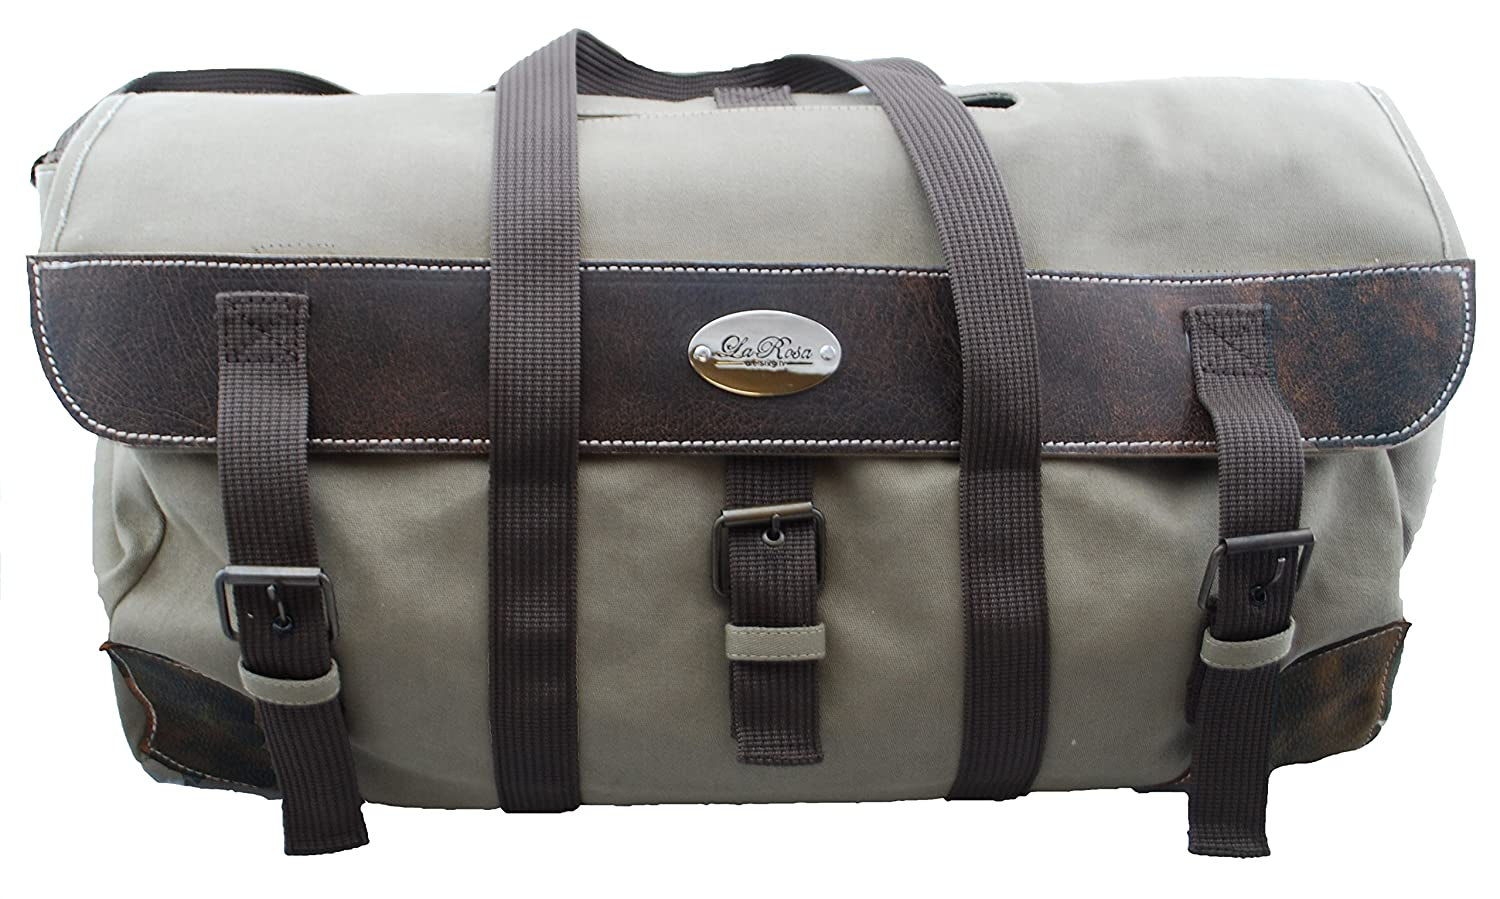 Amazon.com  La Rosa Design Extra Large Canvas Duffle Bag Luggage with Real  Leather  Automotive a300978fb387a